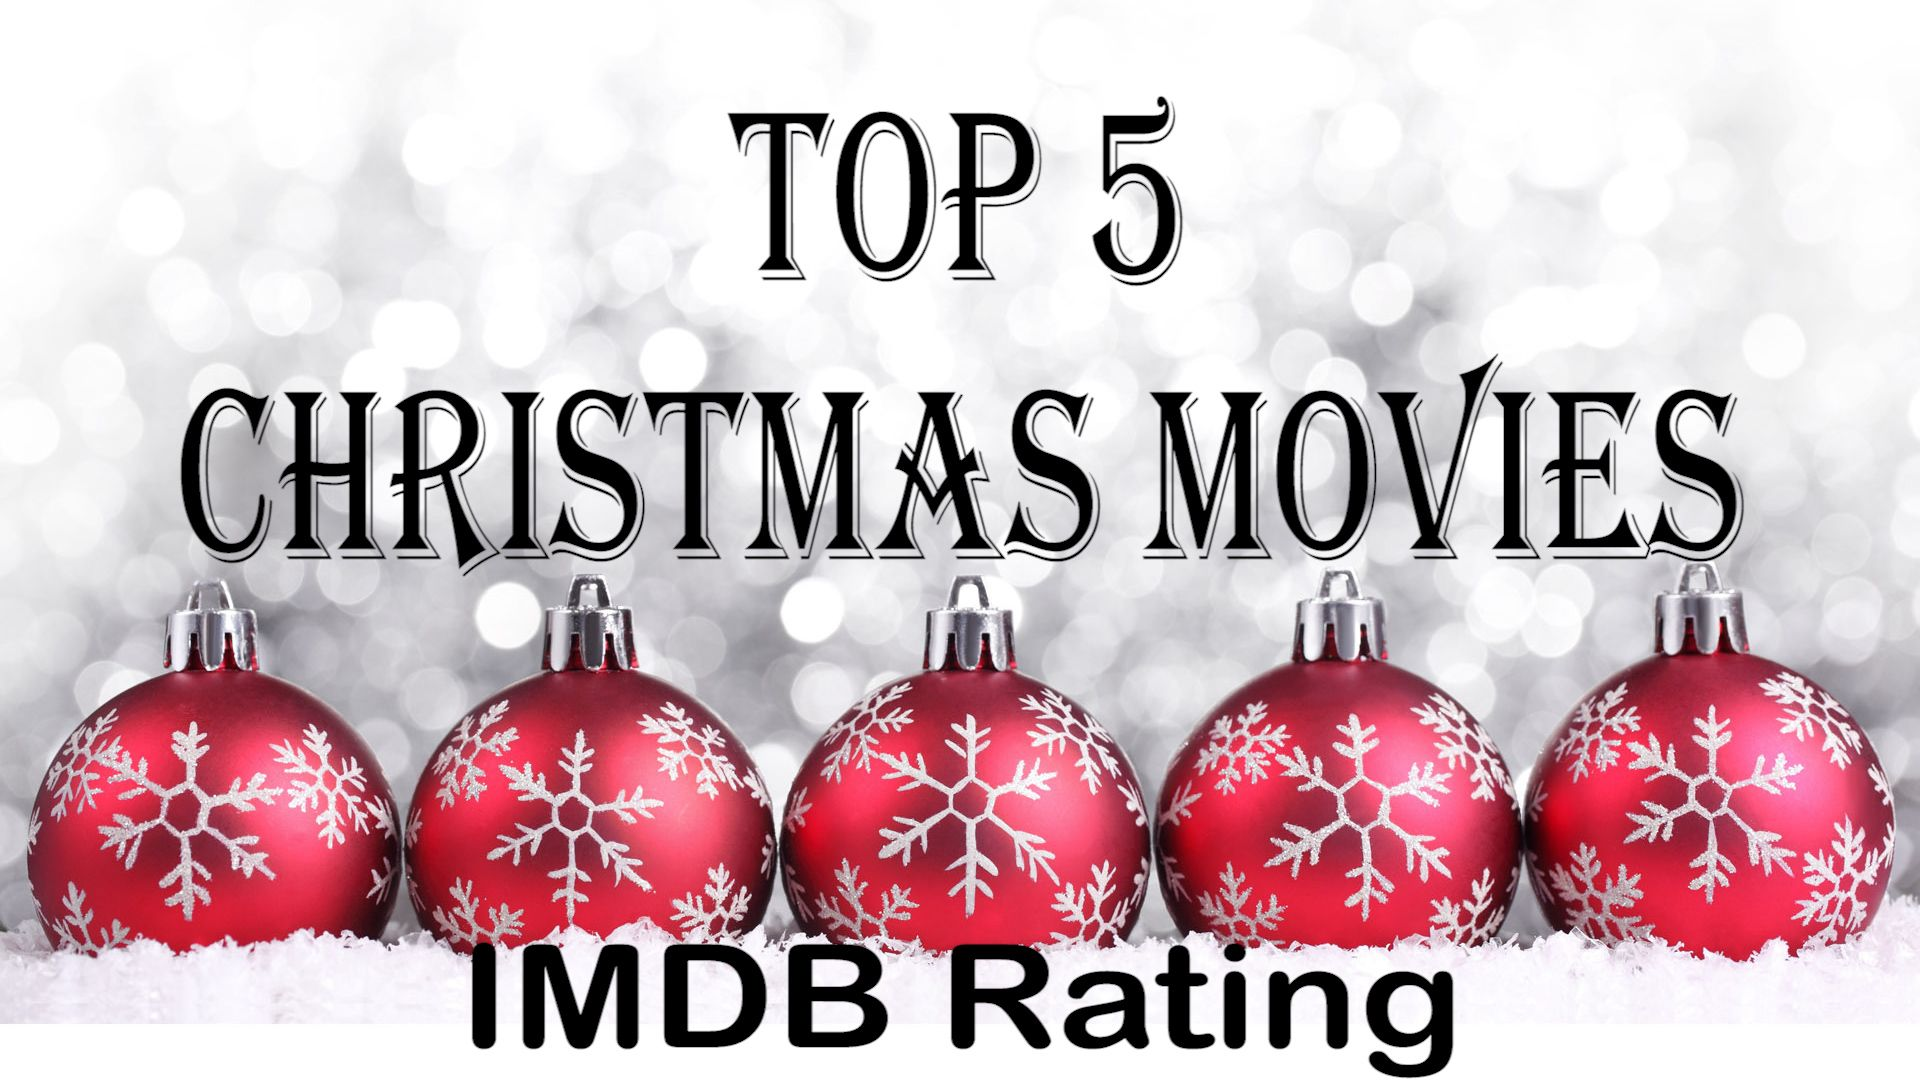 These Are The top 5 Christmas movies and films based on IMDB Rating ...